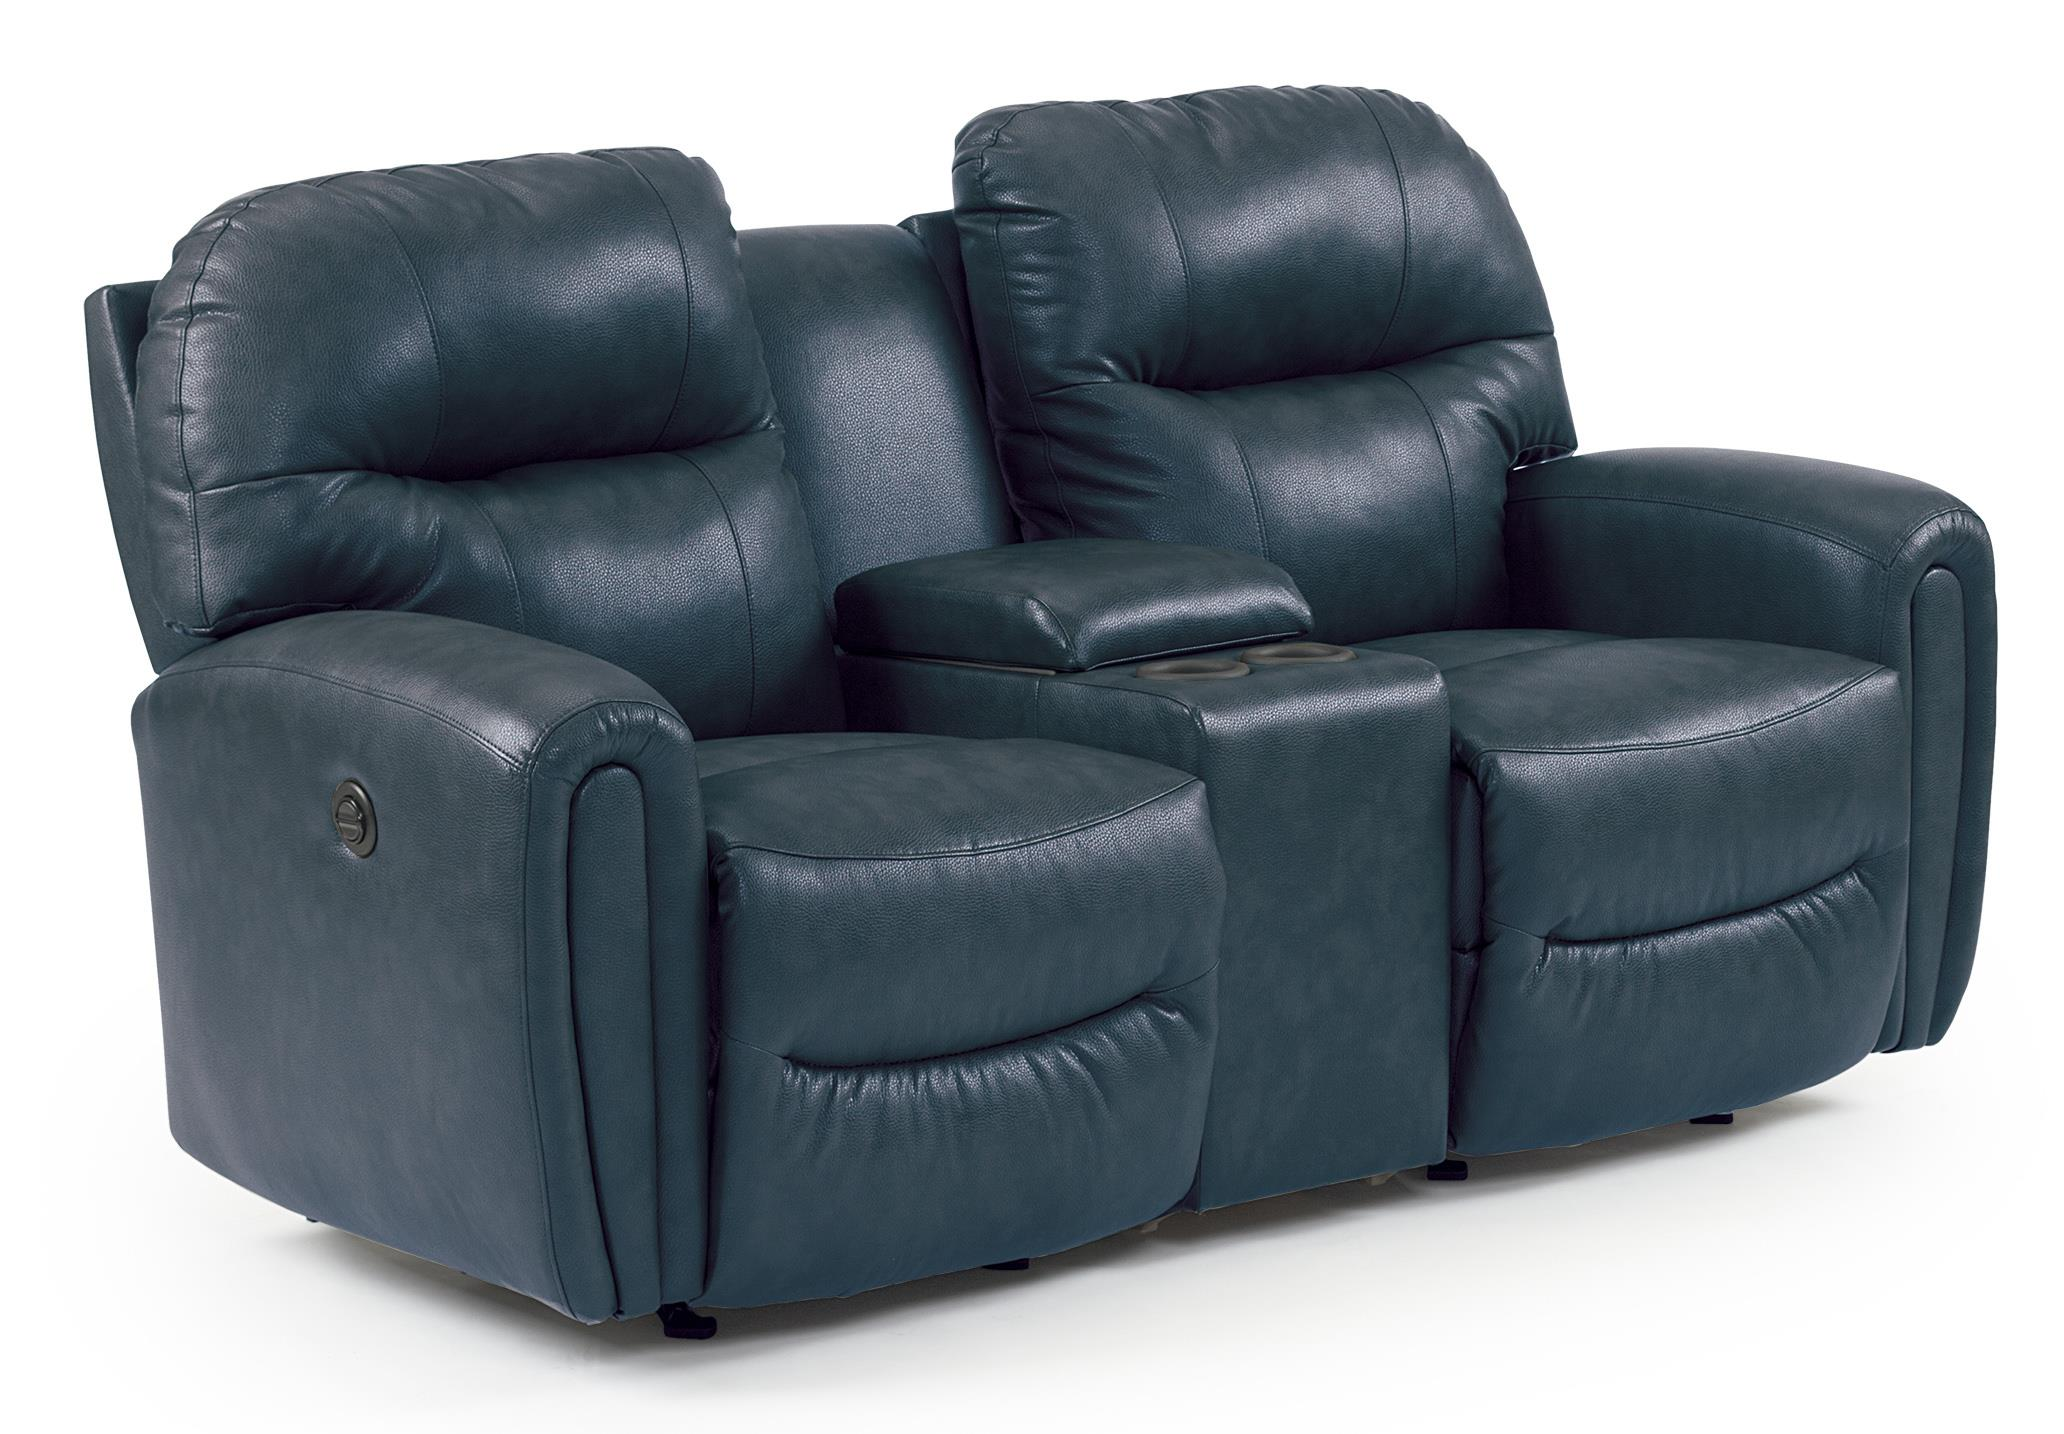 Best Home Furnishings Markson Power Rocker Console Loveseat - Item Number: L860CQ7